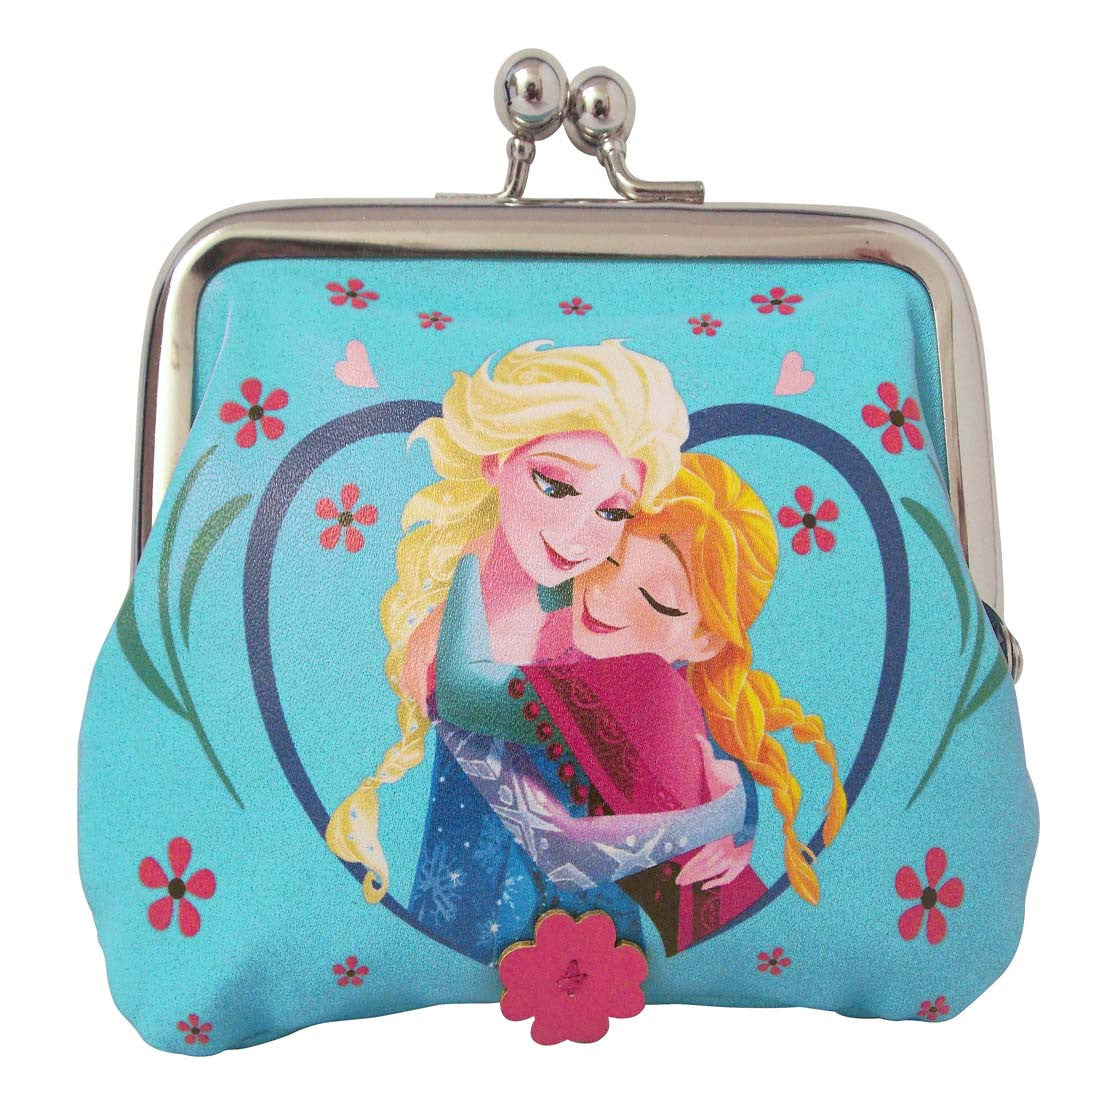 Frozen Clasp Coin Purse